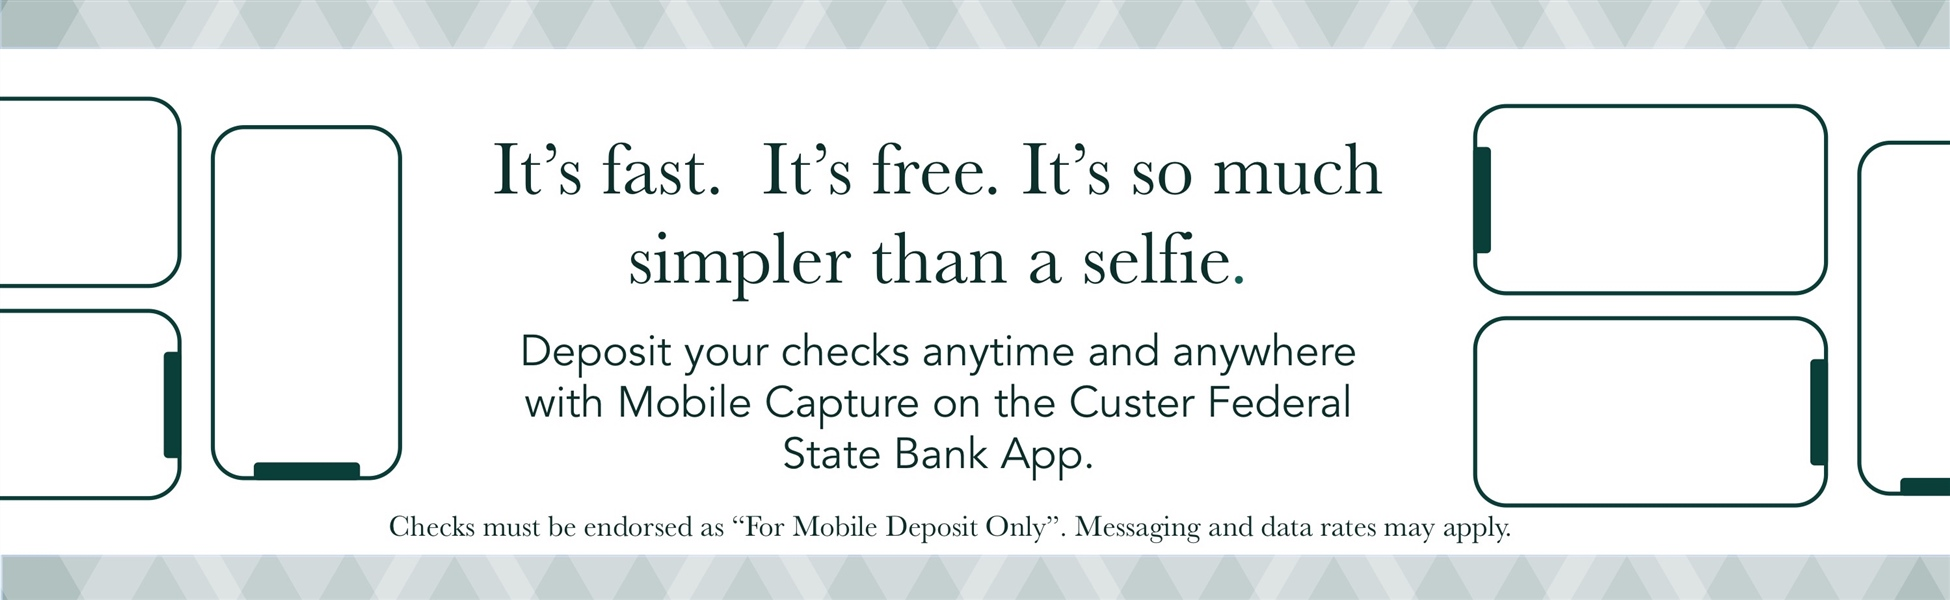 Mobile Deposit through the Custer Federal State Bank app